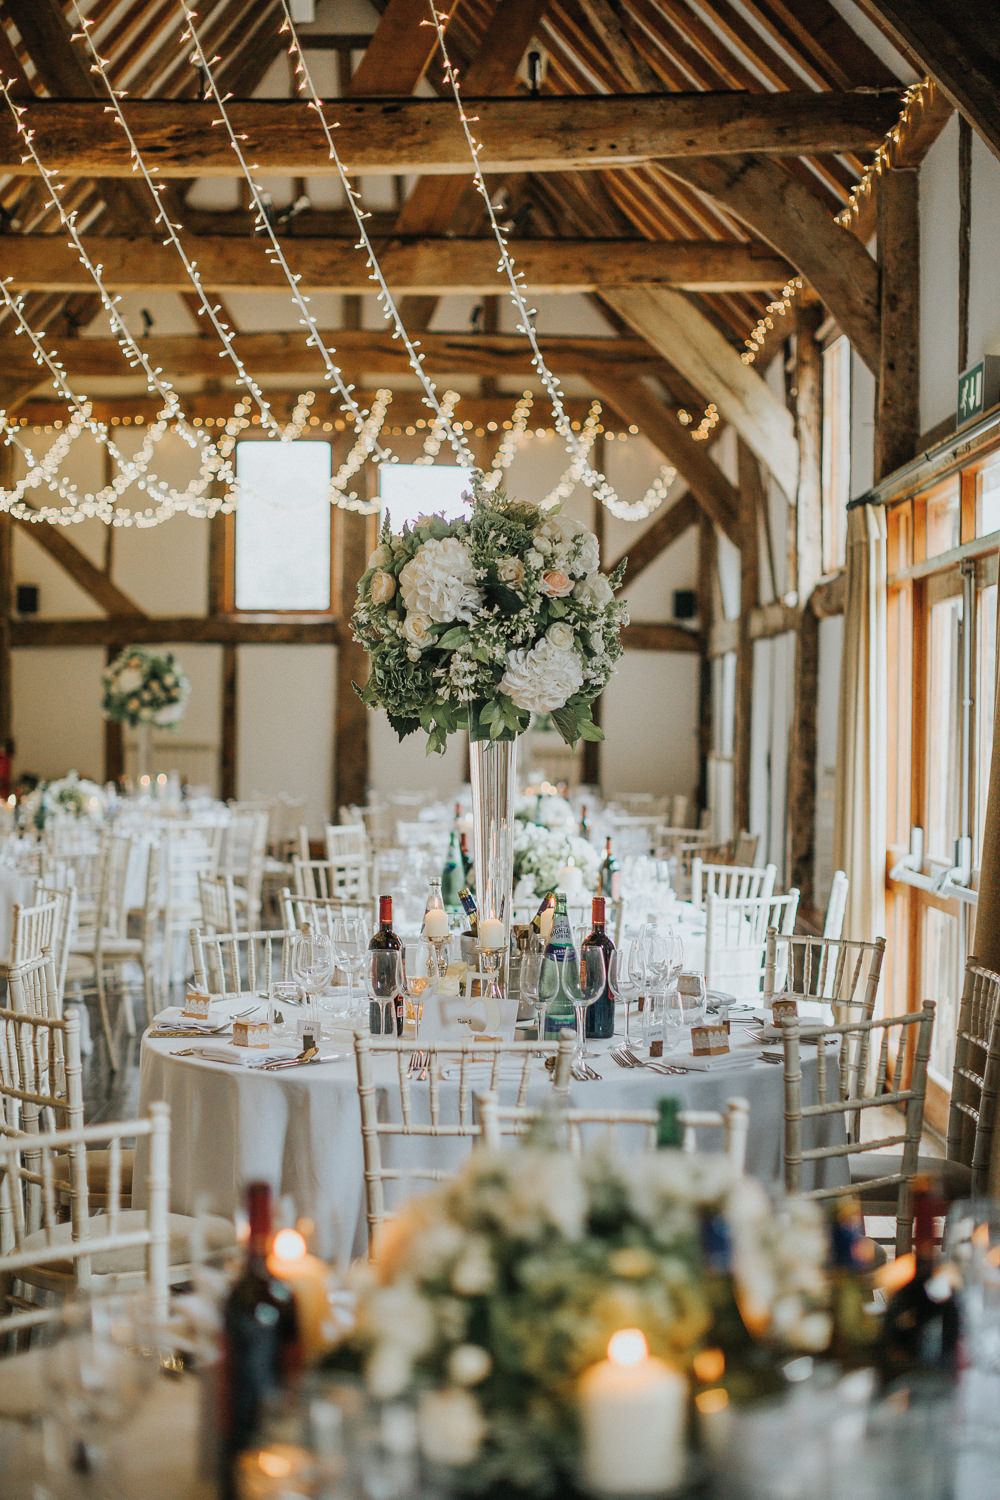 Tall table Centre Greenery White Peach Blush Roses Fairy Light Canopy Loseley Park Wedding Kit Myers Photography